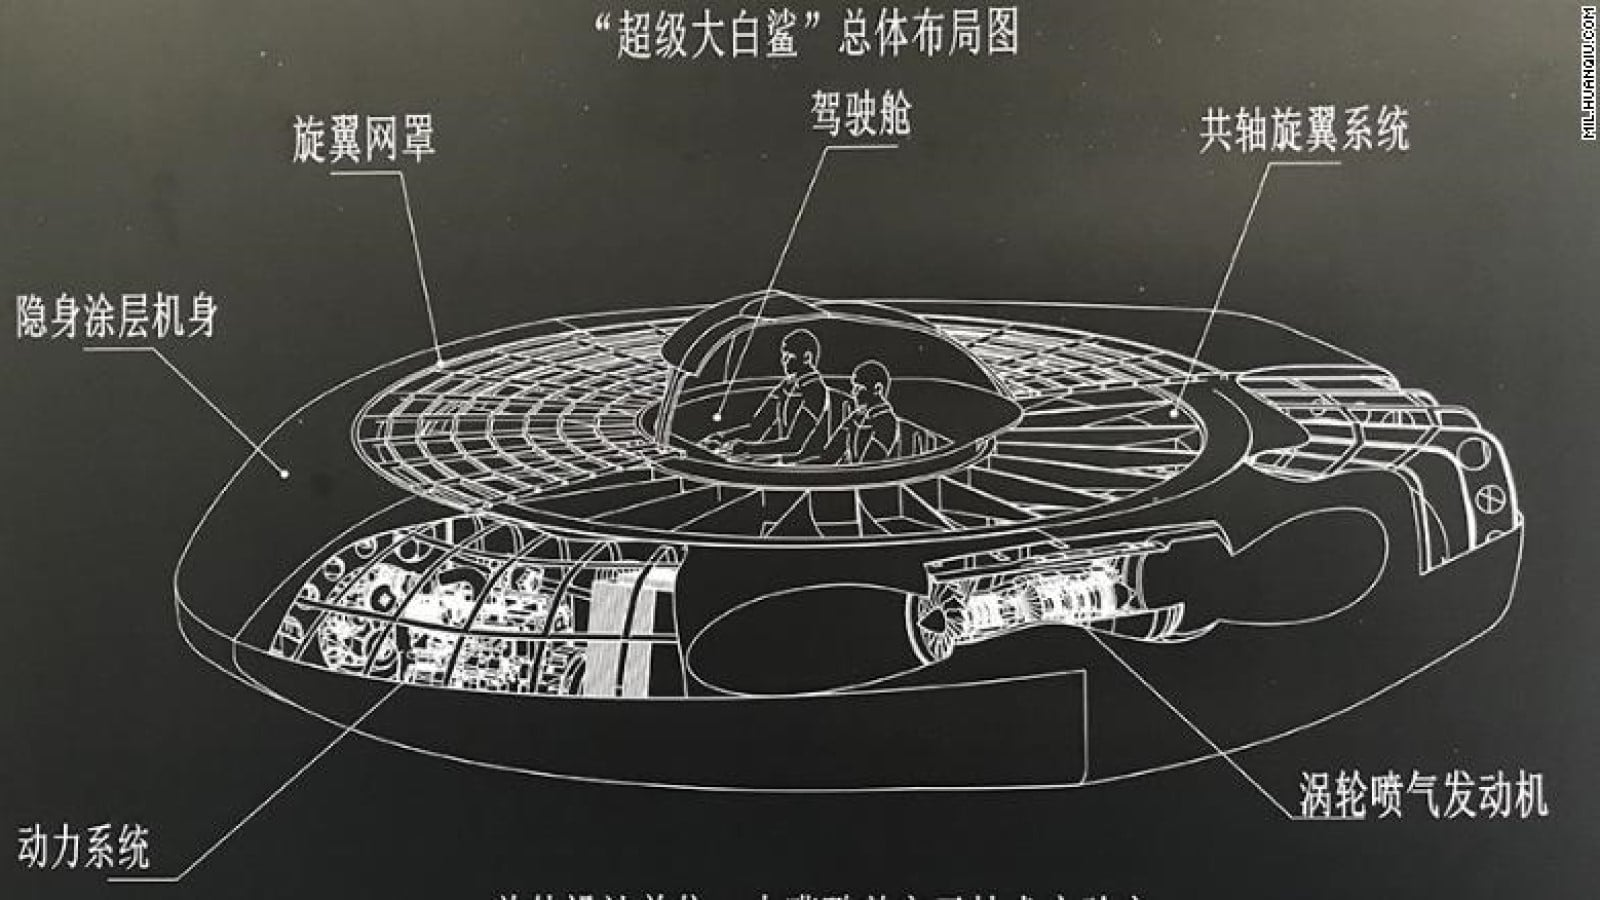 schematic of chinese attack helicopter